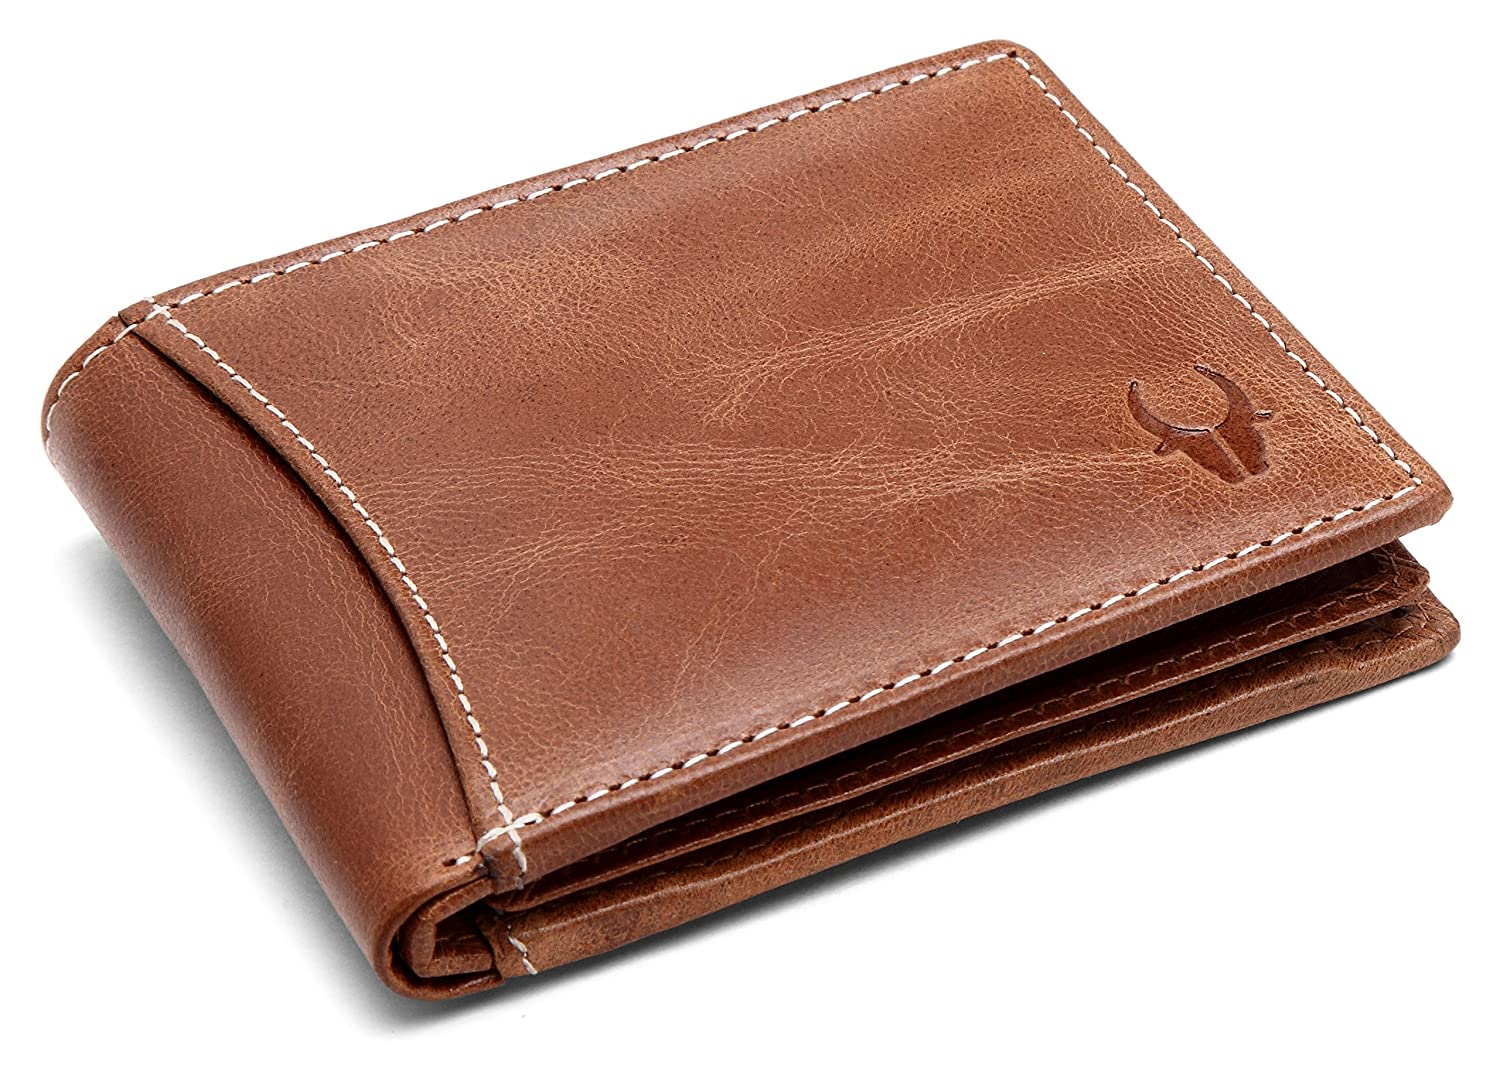 WildHorn Mens Leather Wallet Tan WH1255 CRUNCH